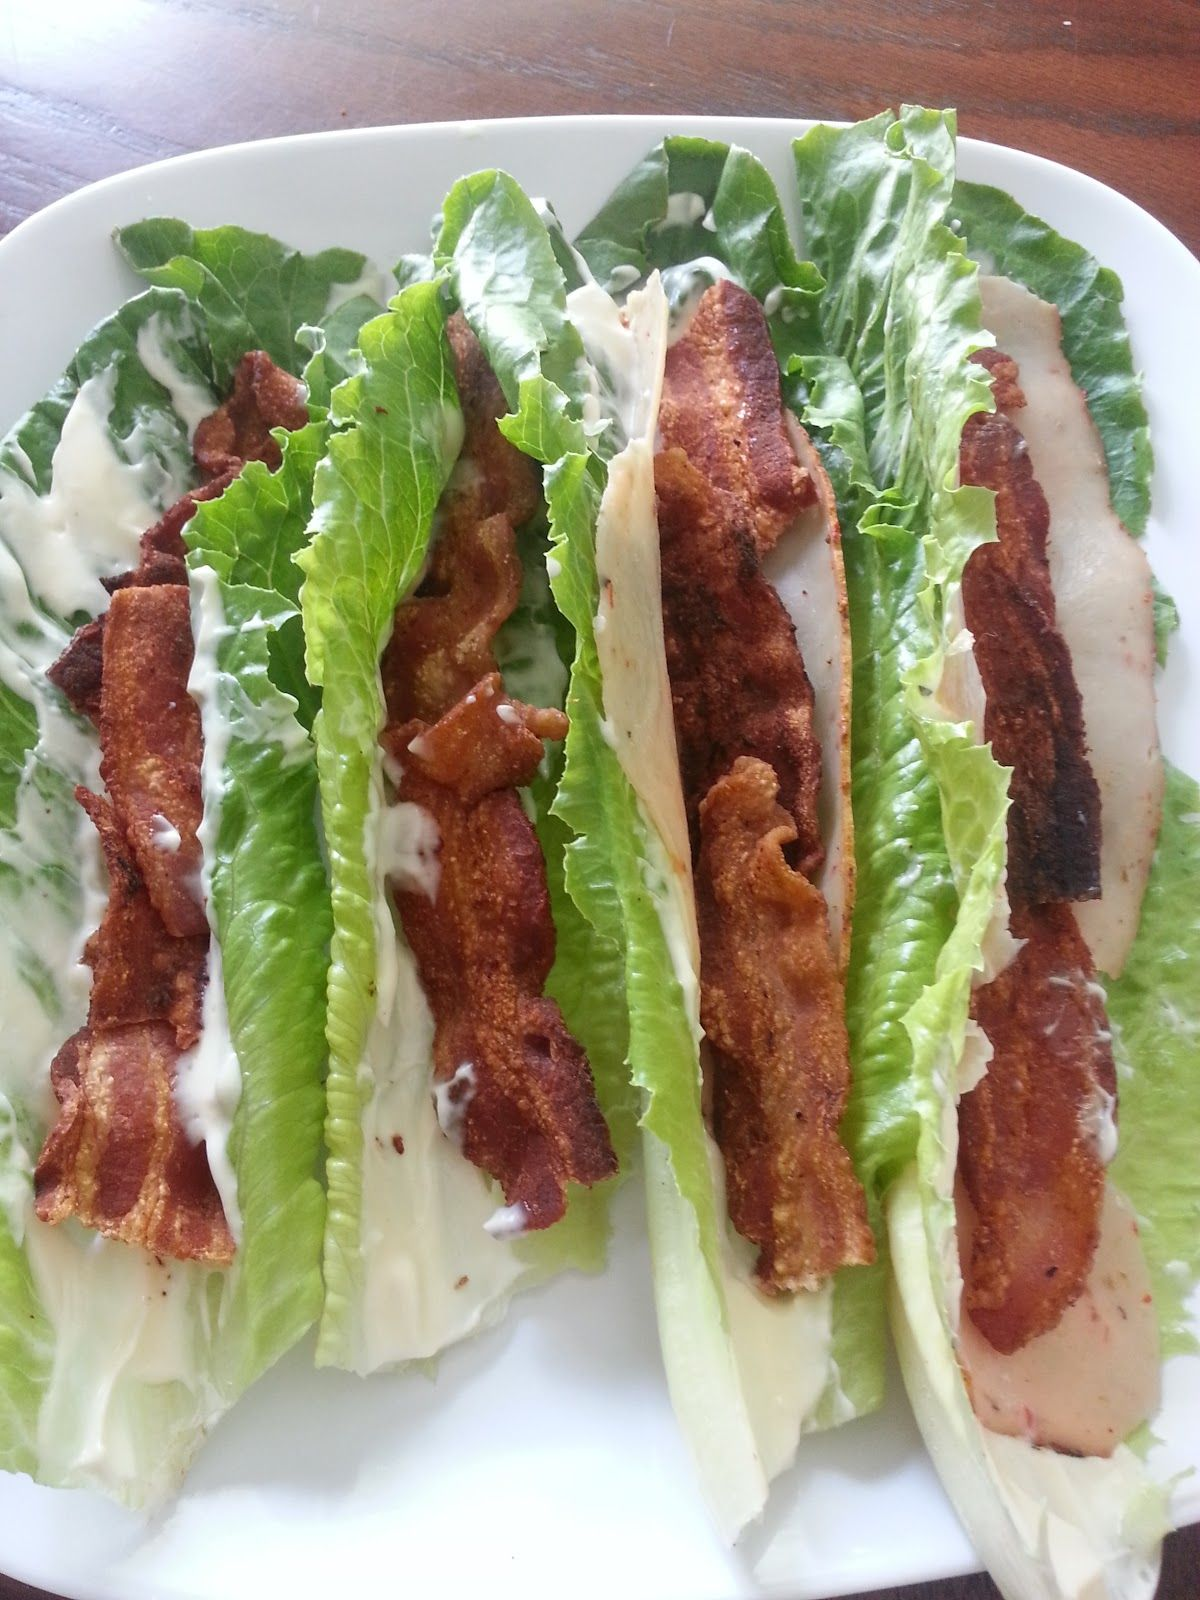 Menü Ohne Kohlenhydrate Sugar Free Like Me Turkey And Bacon Lettuce Wraps Salate In